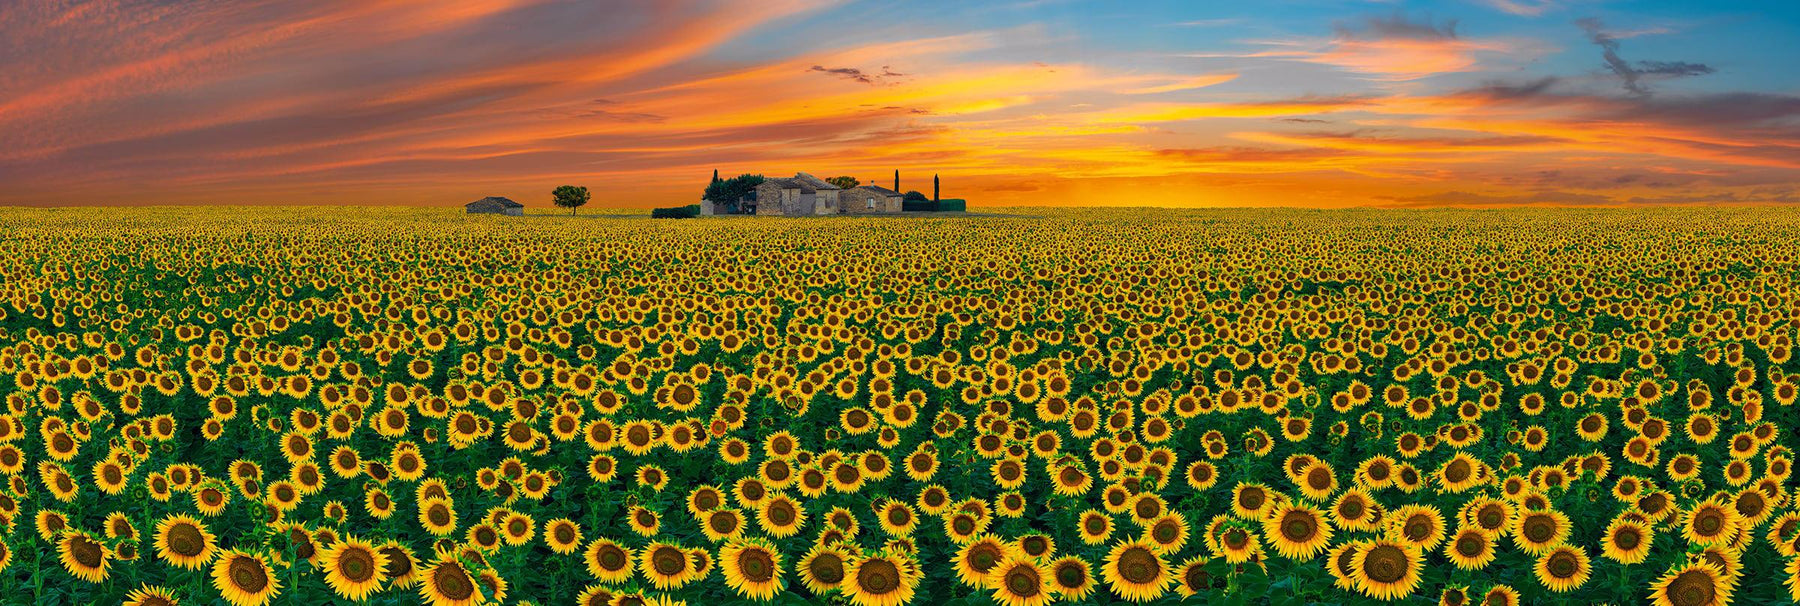 House in the middle of a sunflower field in France at sunset